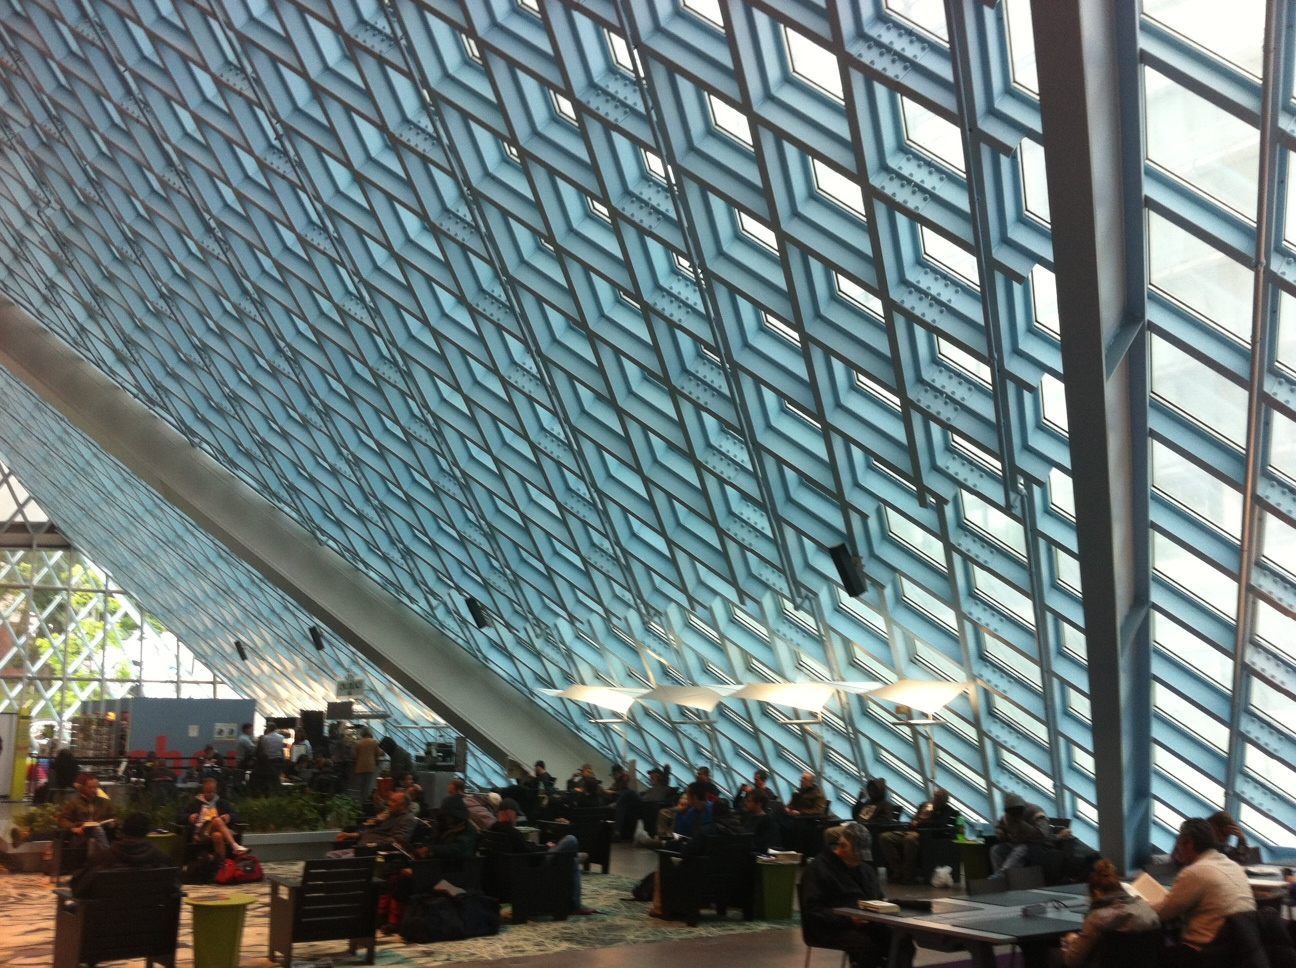 The Seattle Central Library is an iconic architectural gem that is popular with both locals and tourists.  Hopefully Calgary's new Central Library will have the same popularity.